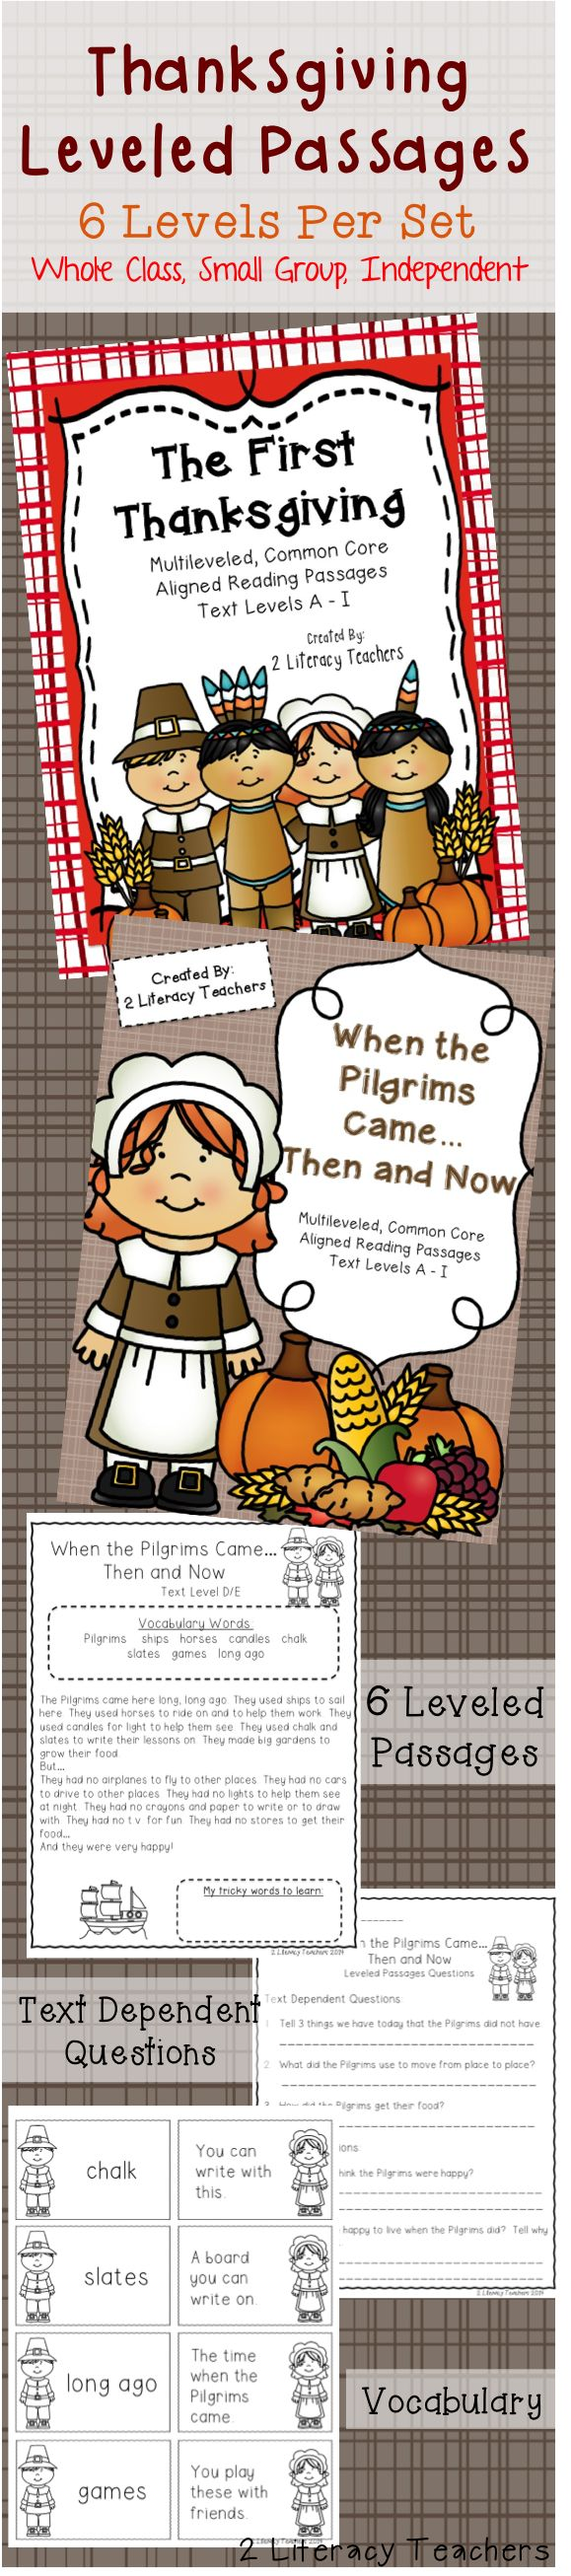 Thanksgiving Passages! Perfect for whole class, small group or independent practice! Close reading and vocabulary practice and assessment. K-2.